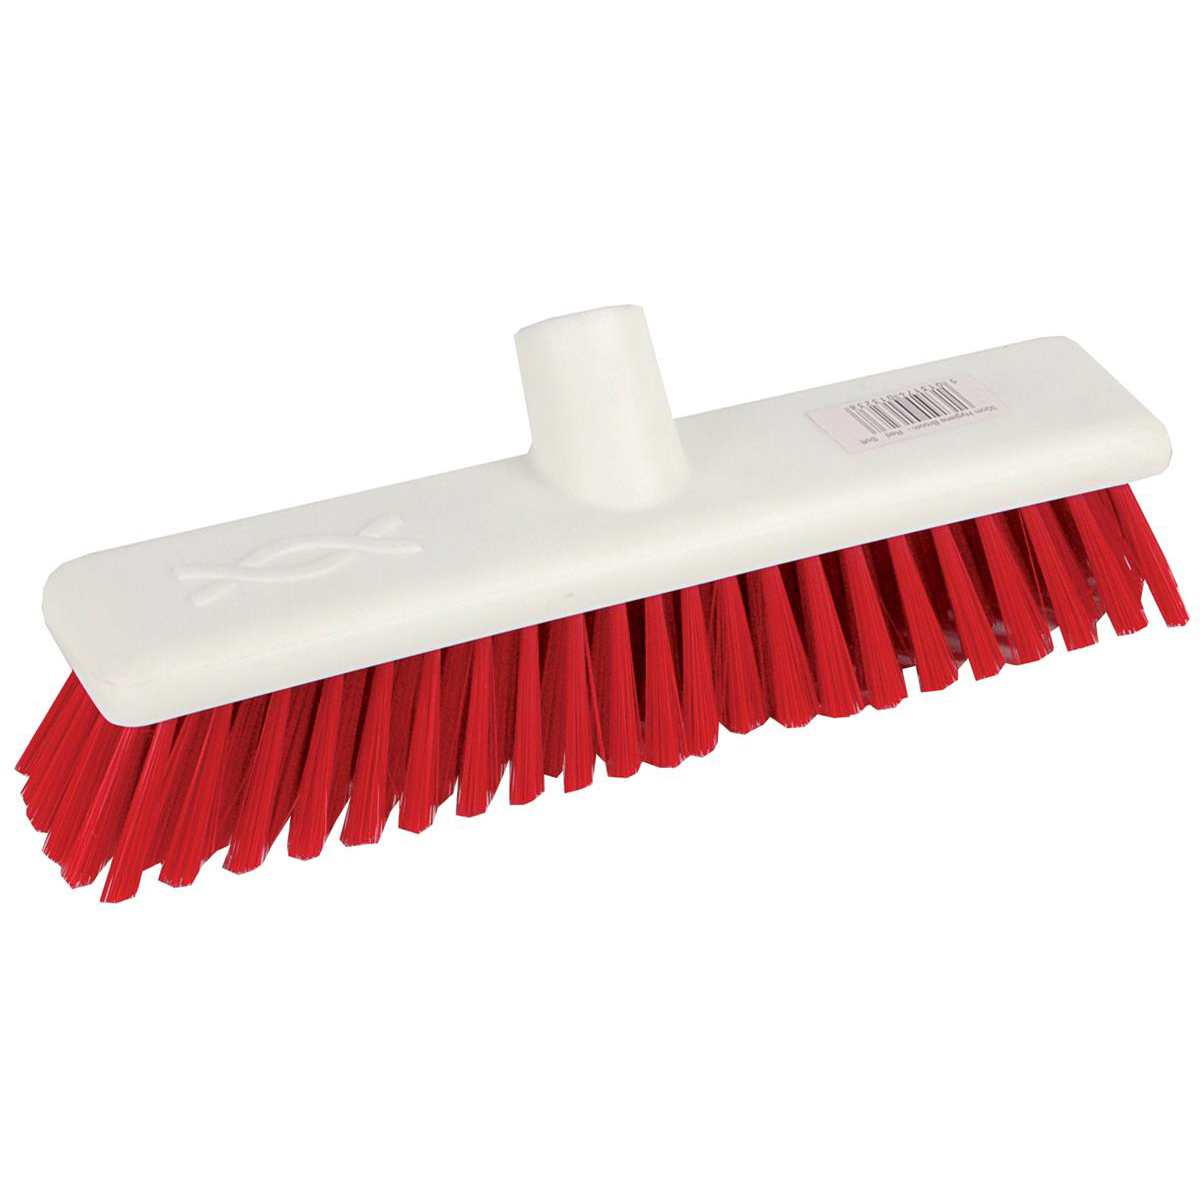 Robert Scott & Sons Abbey Hygiene Broom Head Soft Washable 12in Red Ref 102910RED